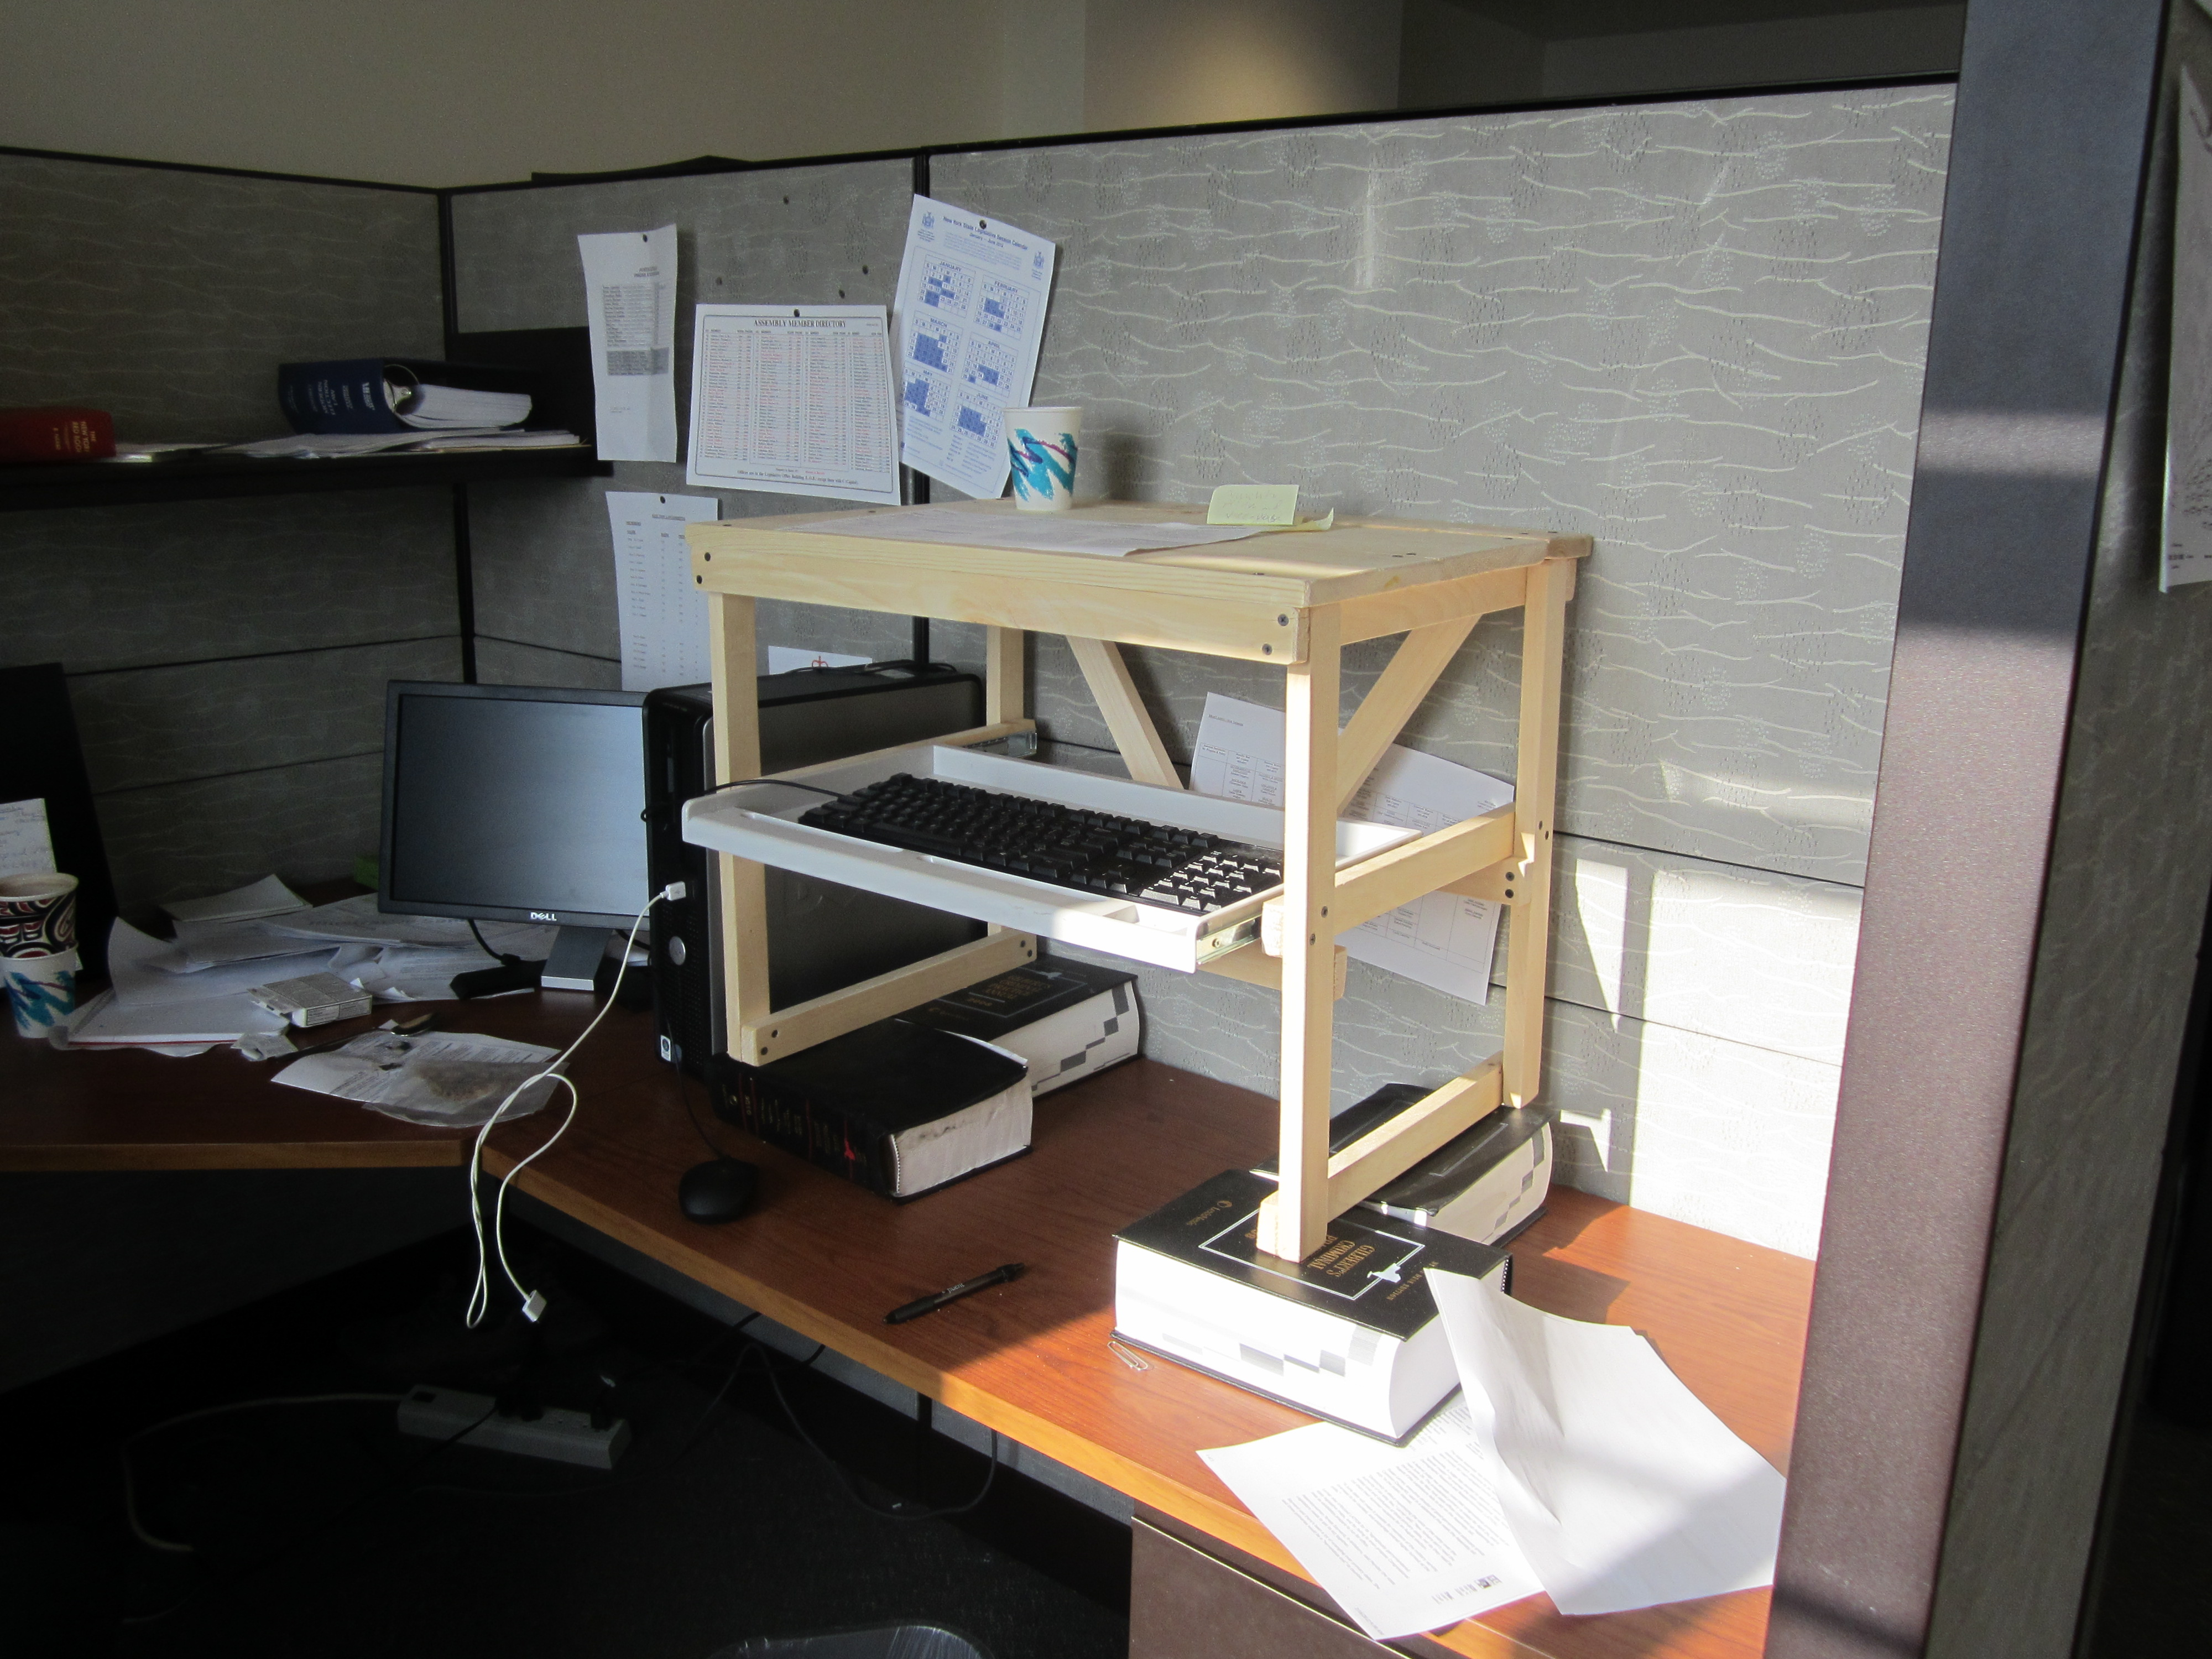 diy exercise} of dog trotting and stand up desks – from scratch club